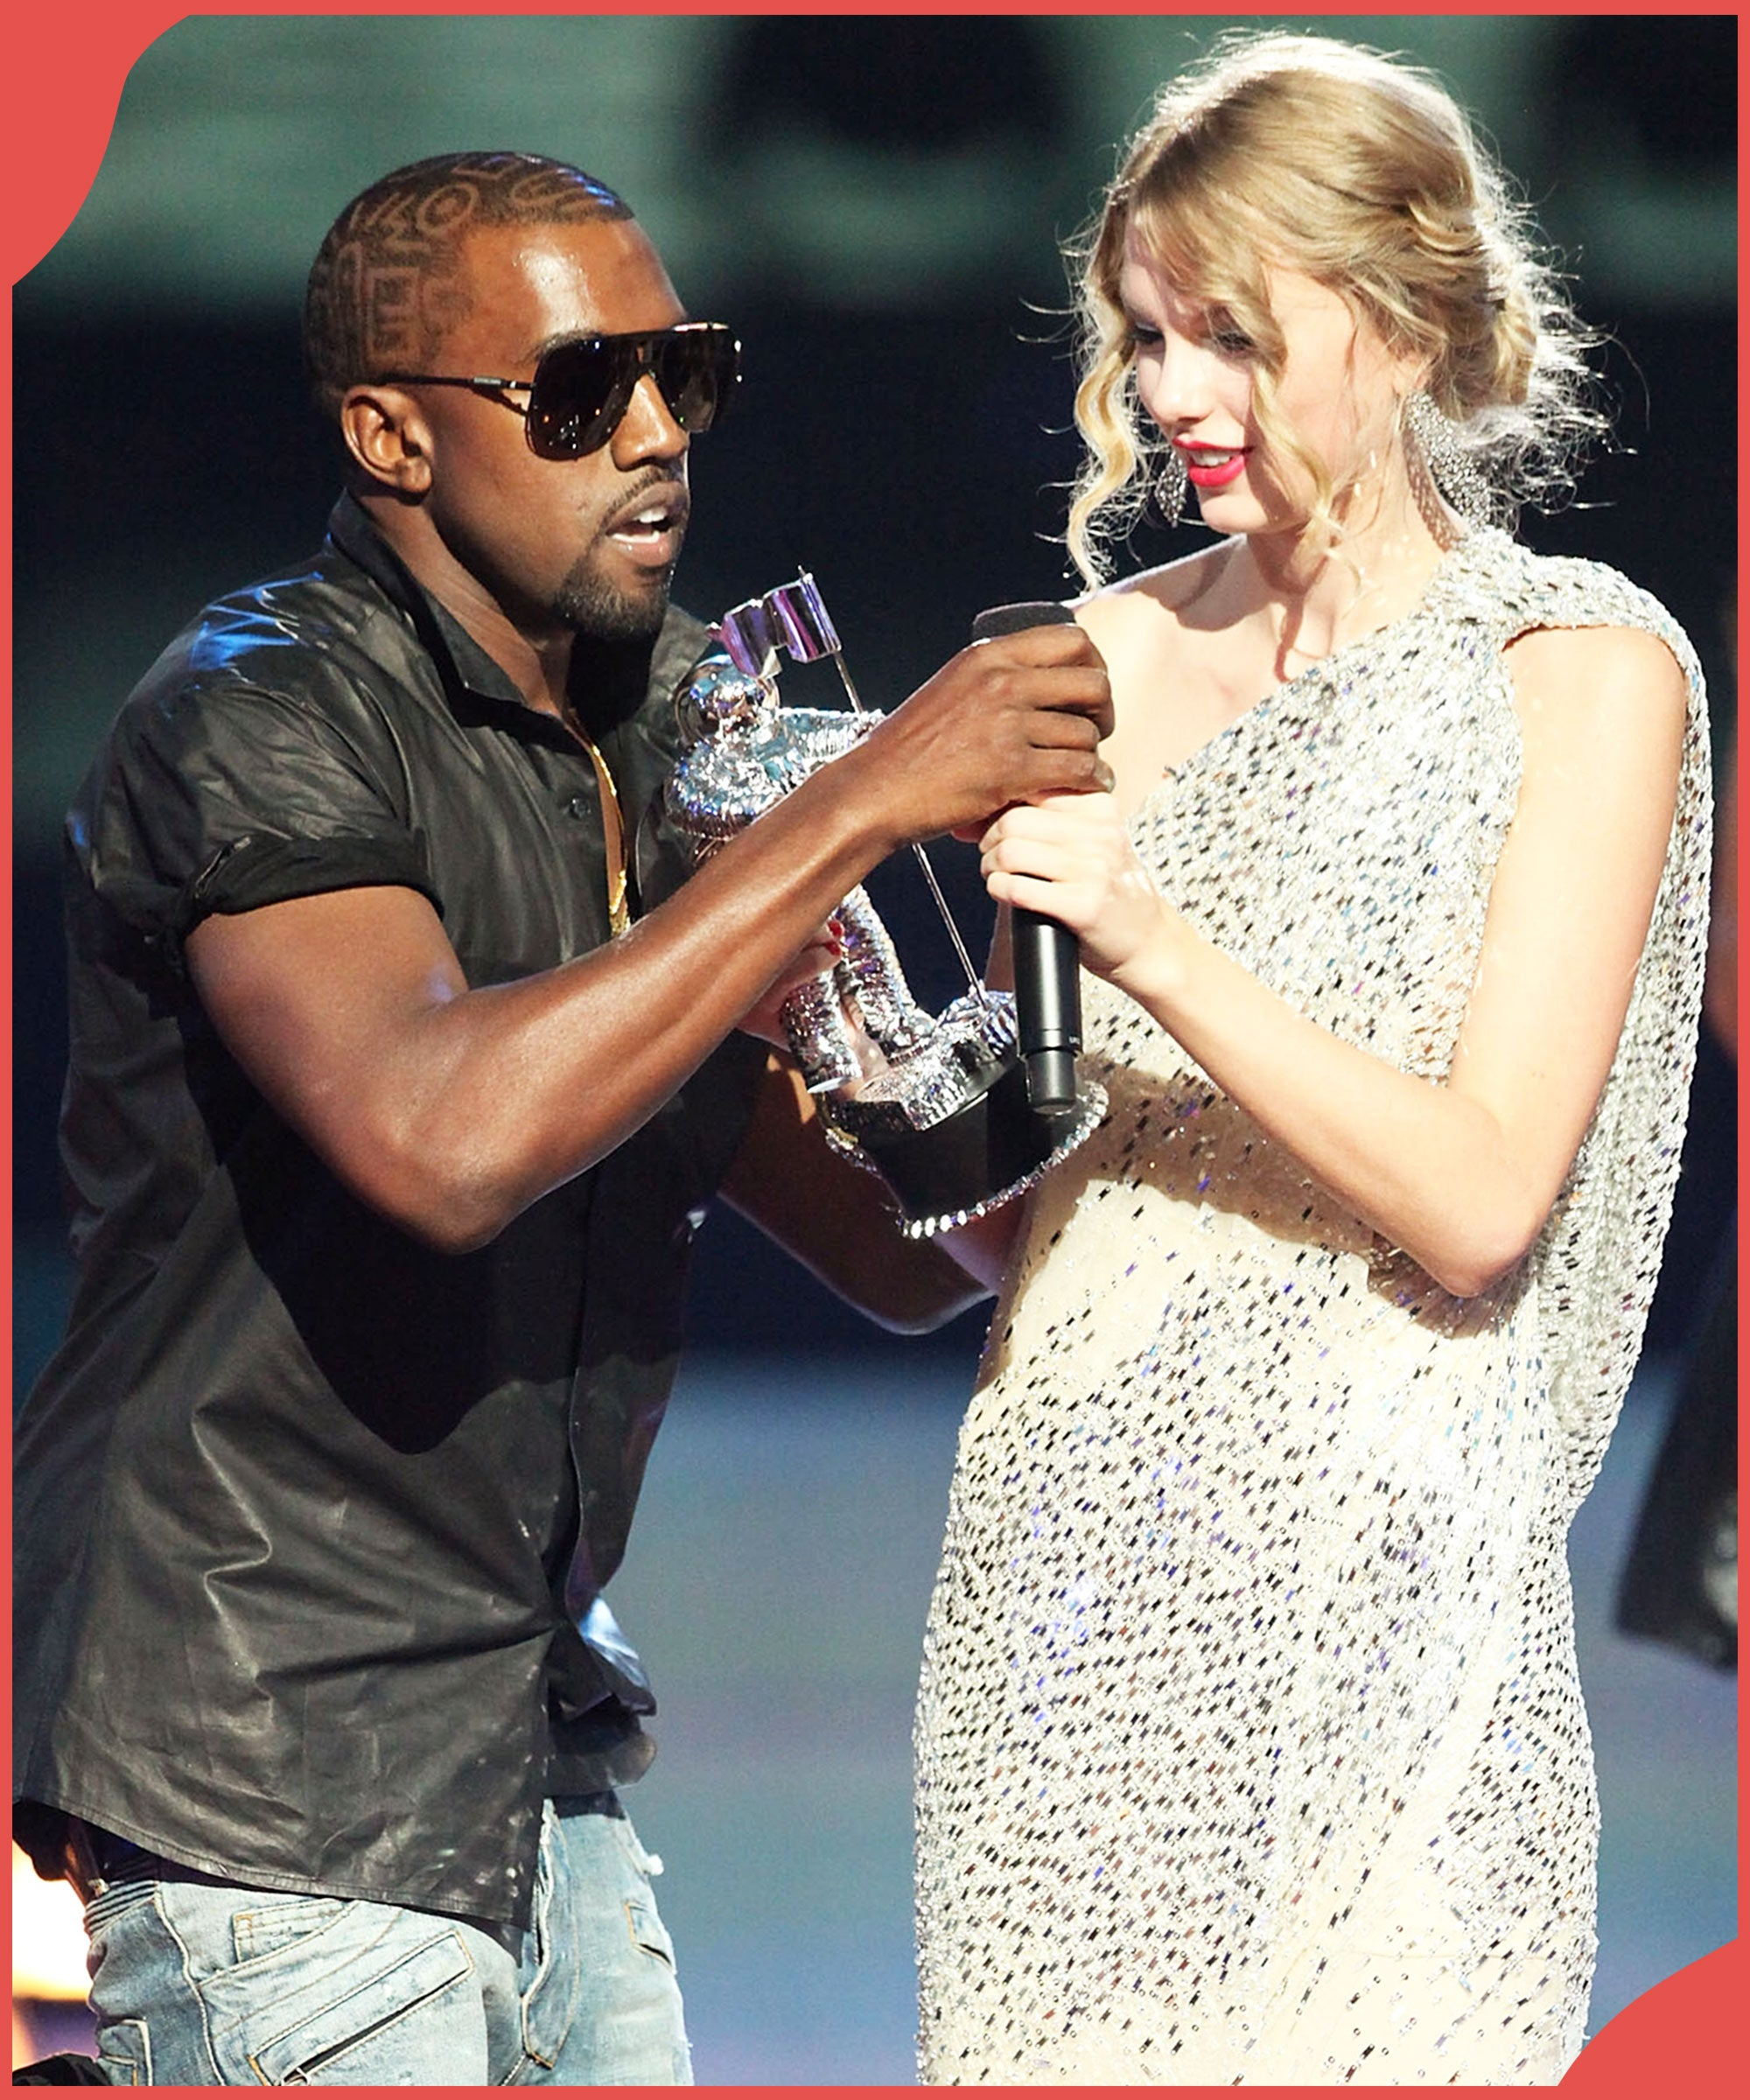 Tracing 10 Years Of Fallout From Kanye West Not Letting Taylor Swift Finish At The VMAs